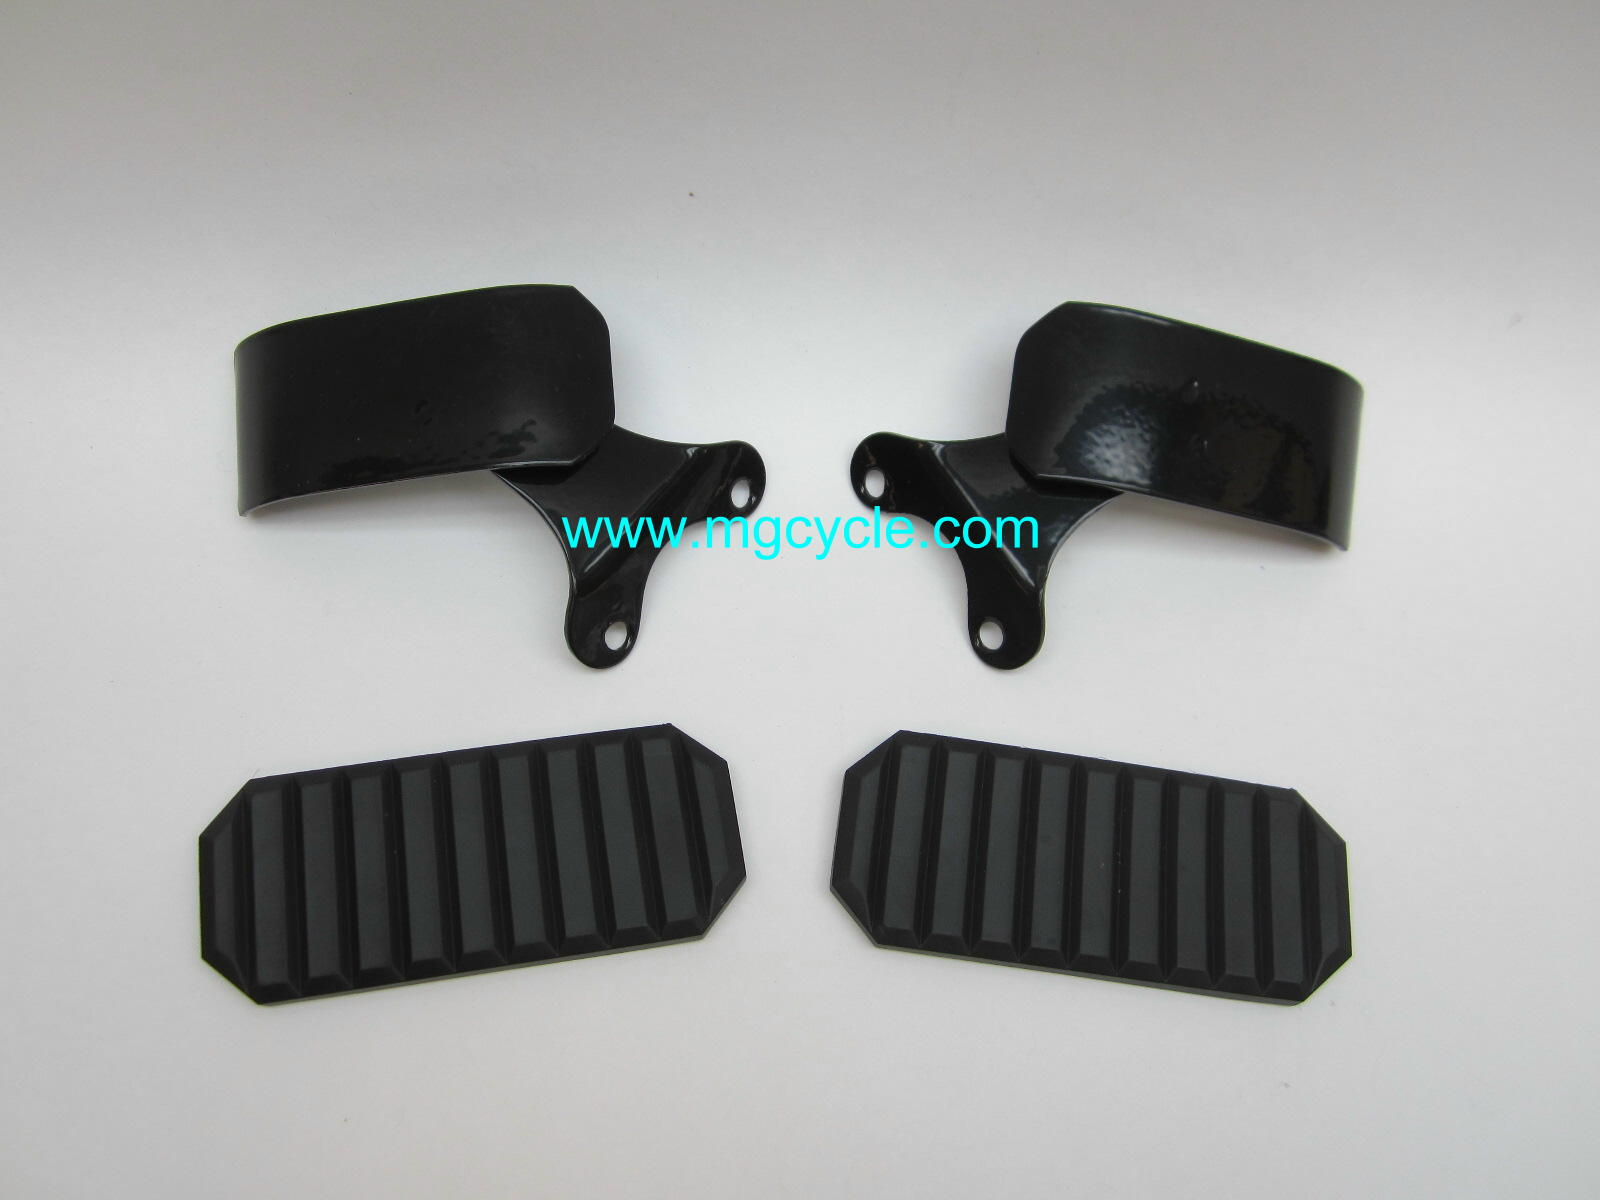 knee guard set, T5, LM3, Cal2